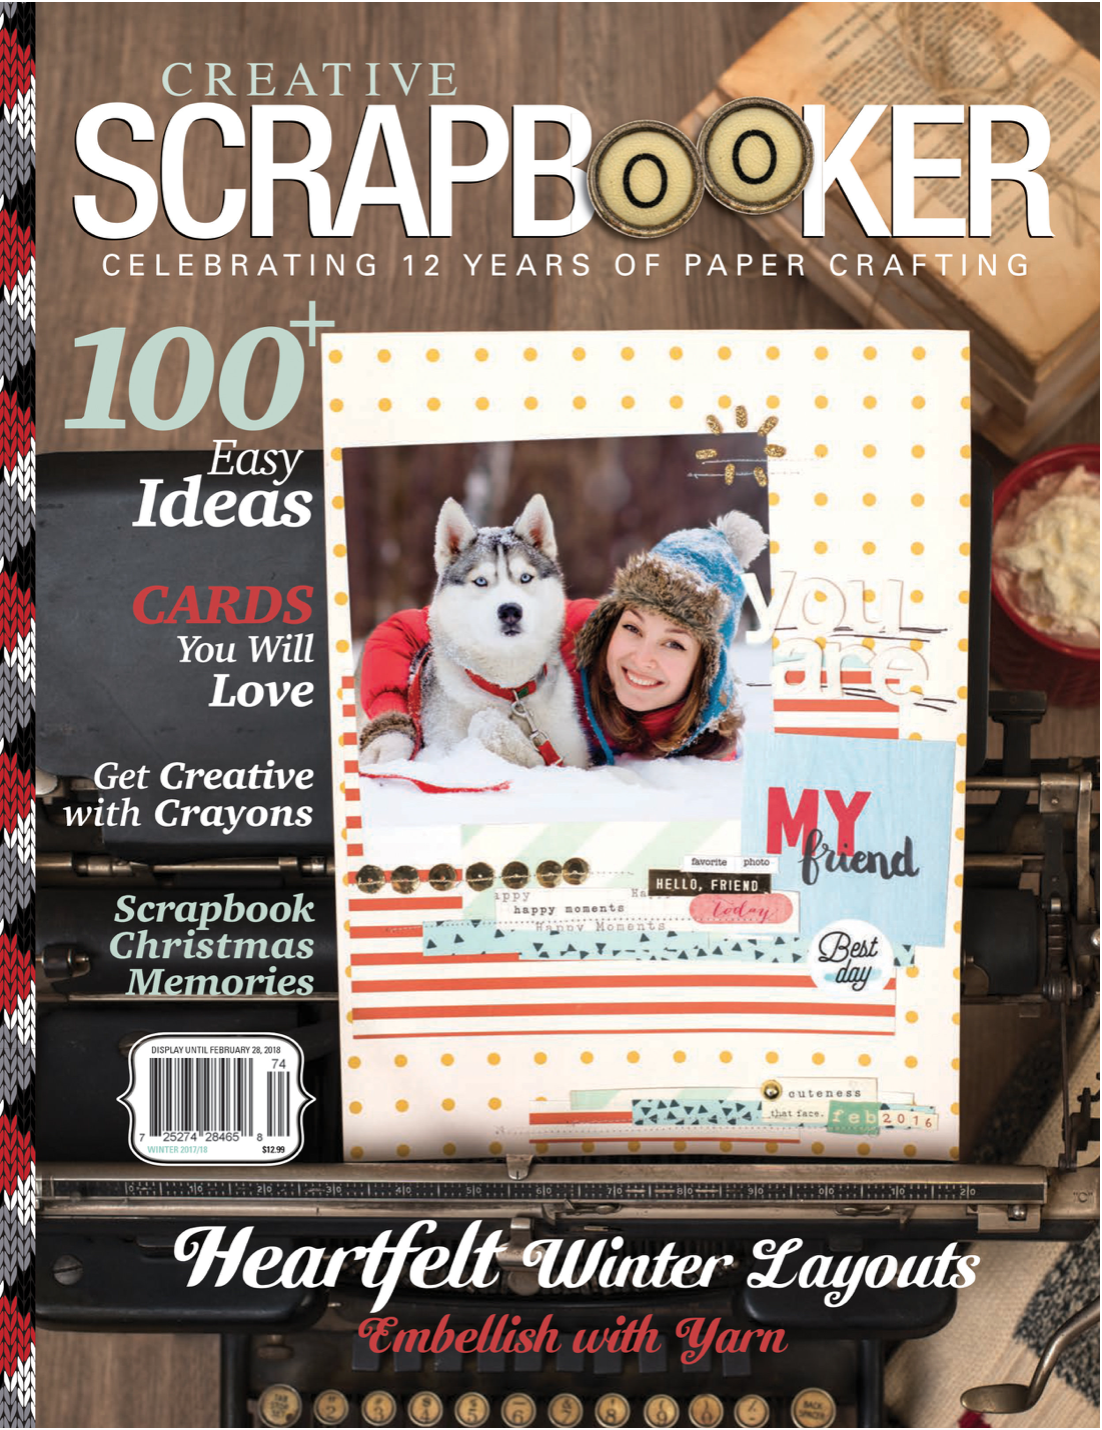 Creative Scrapbooker Magazine / Winter issue / quarterly publication / 100+ easy ideas / cards you will love / Heartfelt Winter Layouts